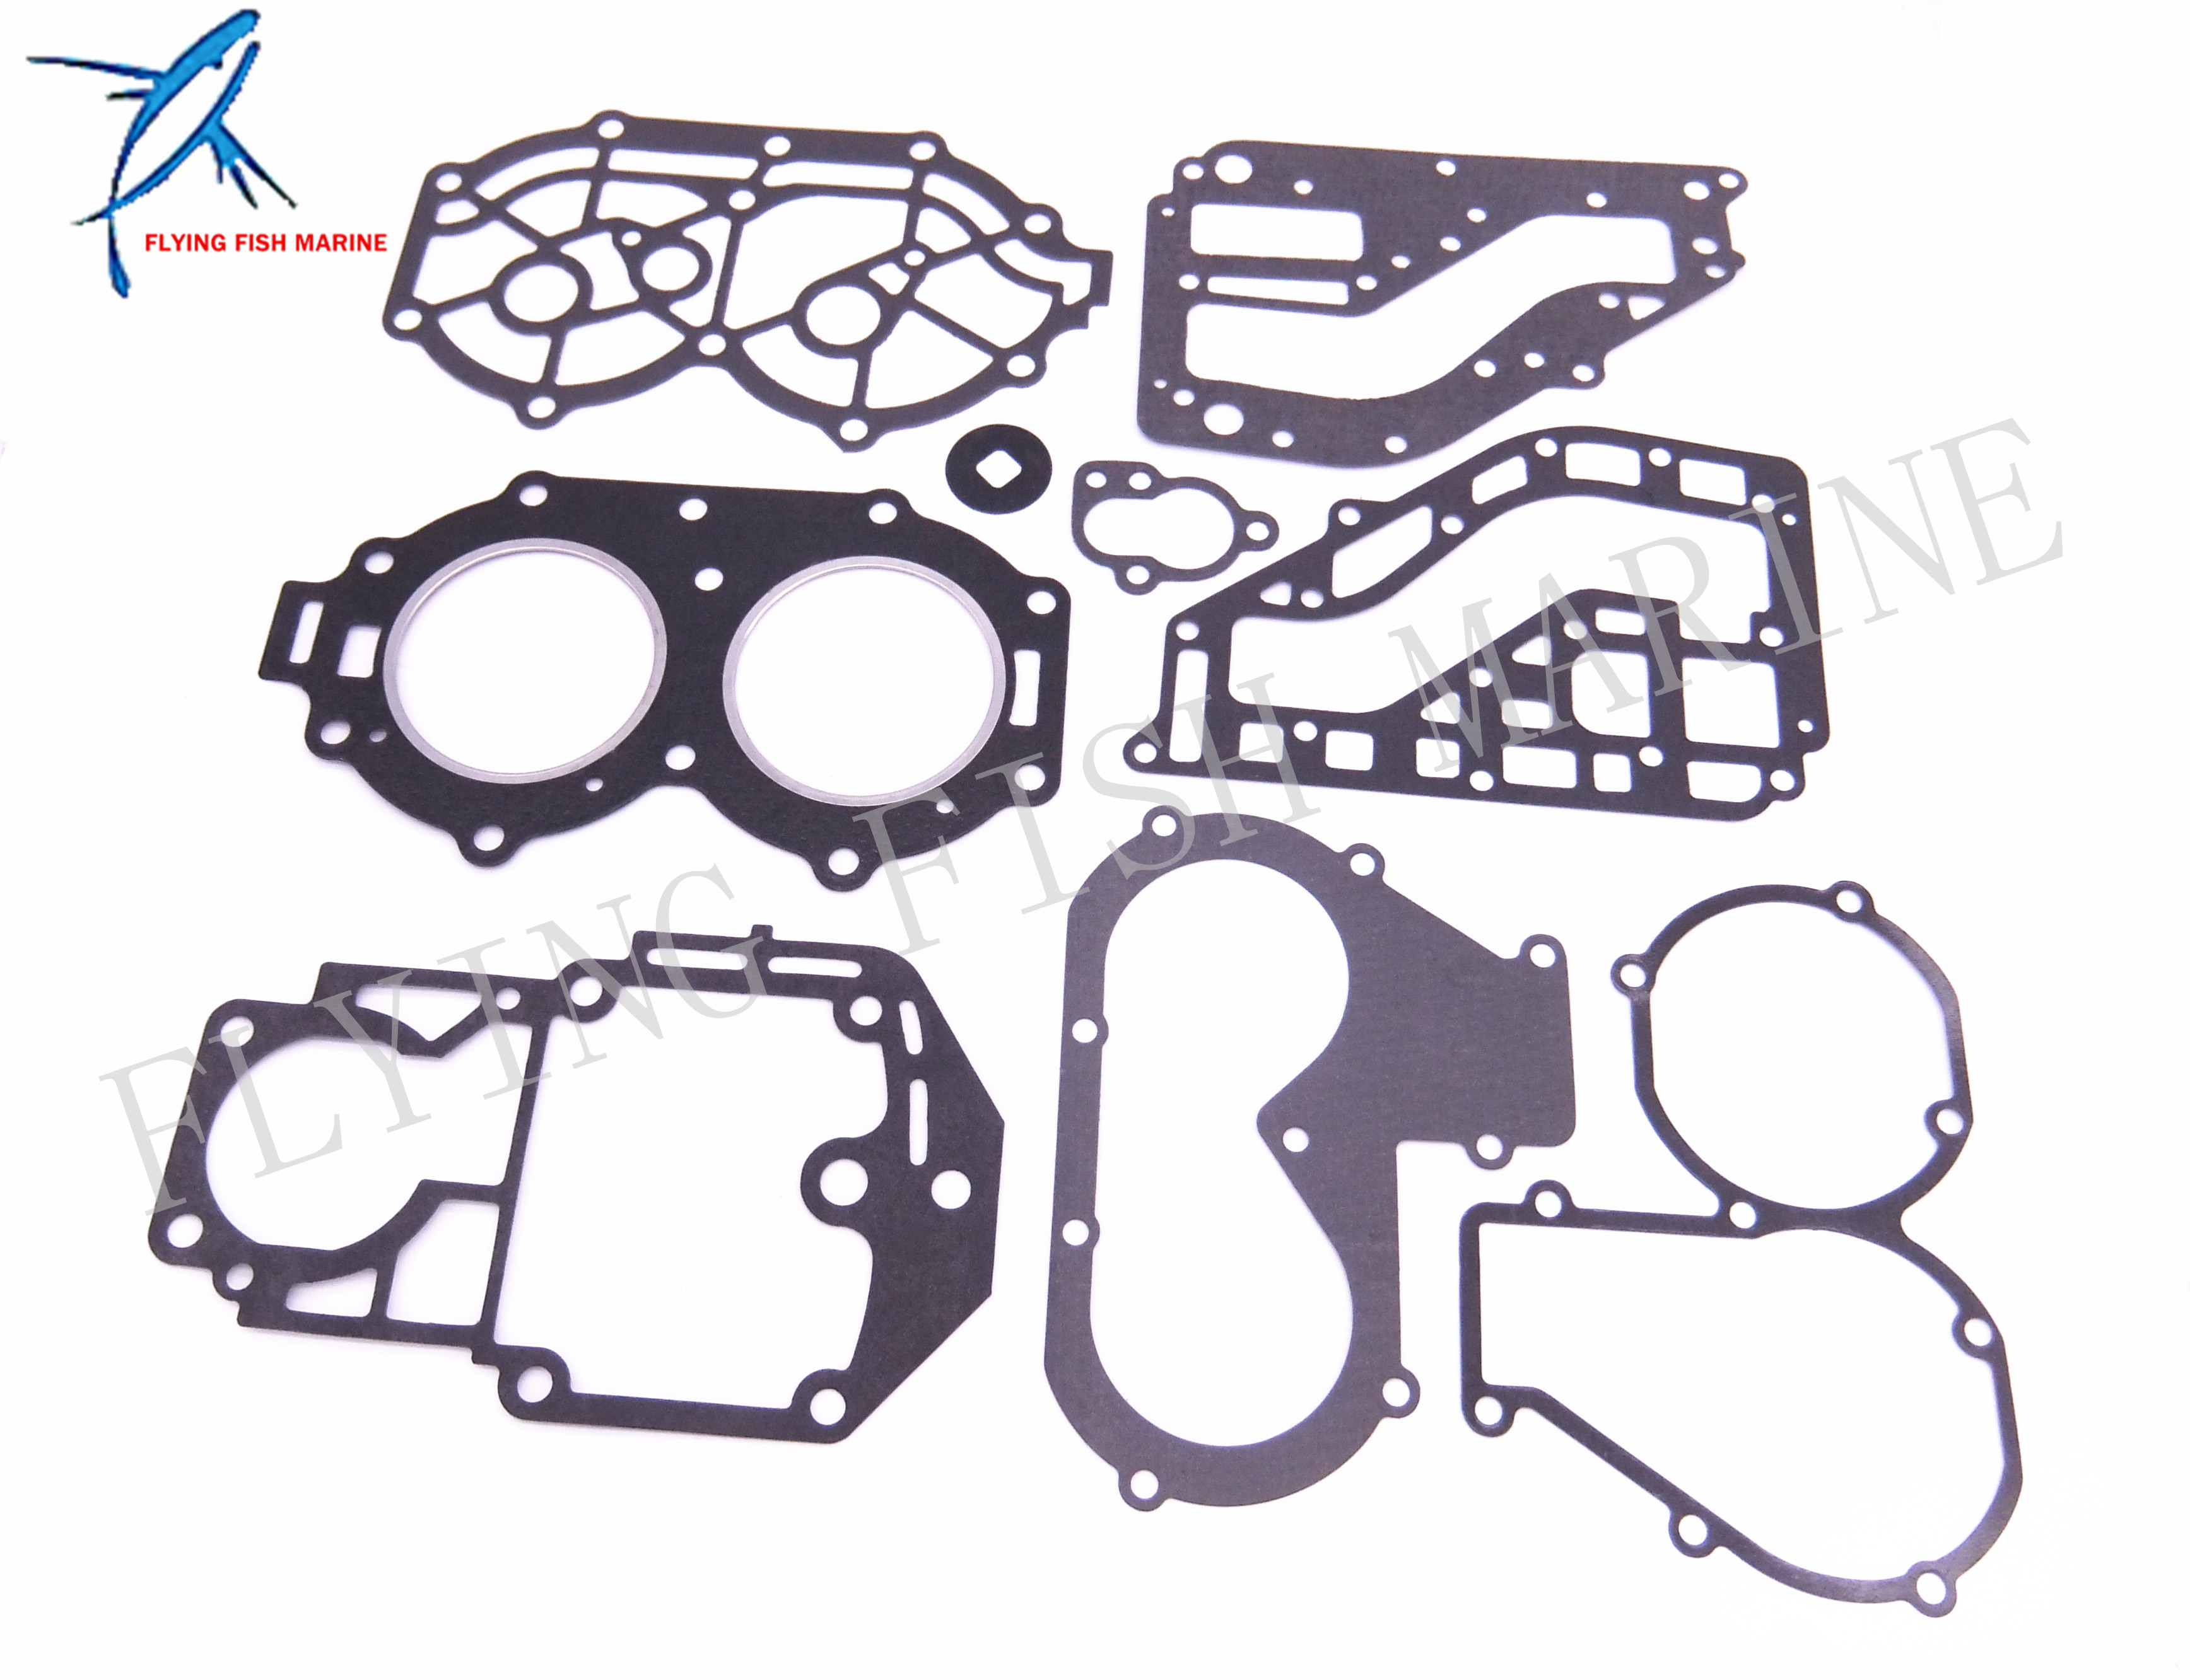 Boat Motor Complete Power Head Seal Gasket Kit for Yamaha 25HP 30HP Outboard Engine 67h 43880 00 new tilt trim motor for yamaha 115 225 hp 1997 2002 outboard engine power motor 64e 43880